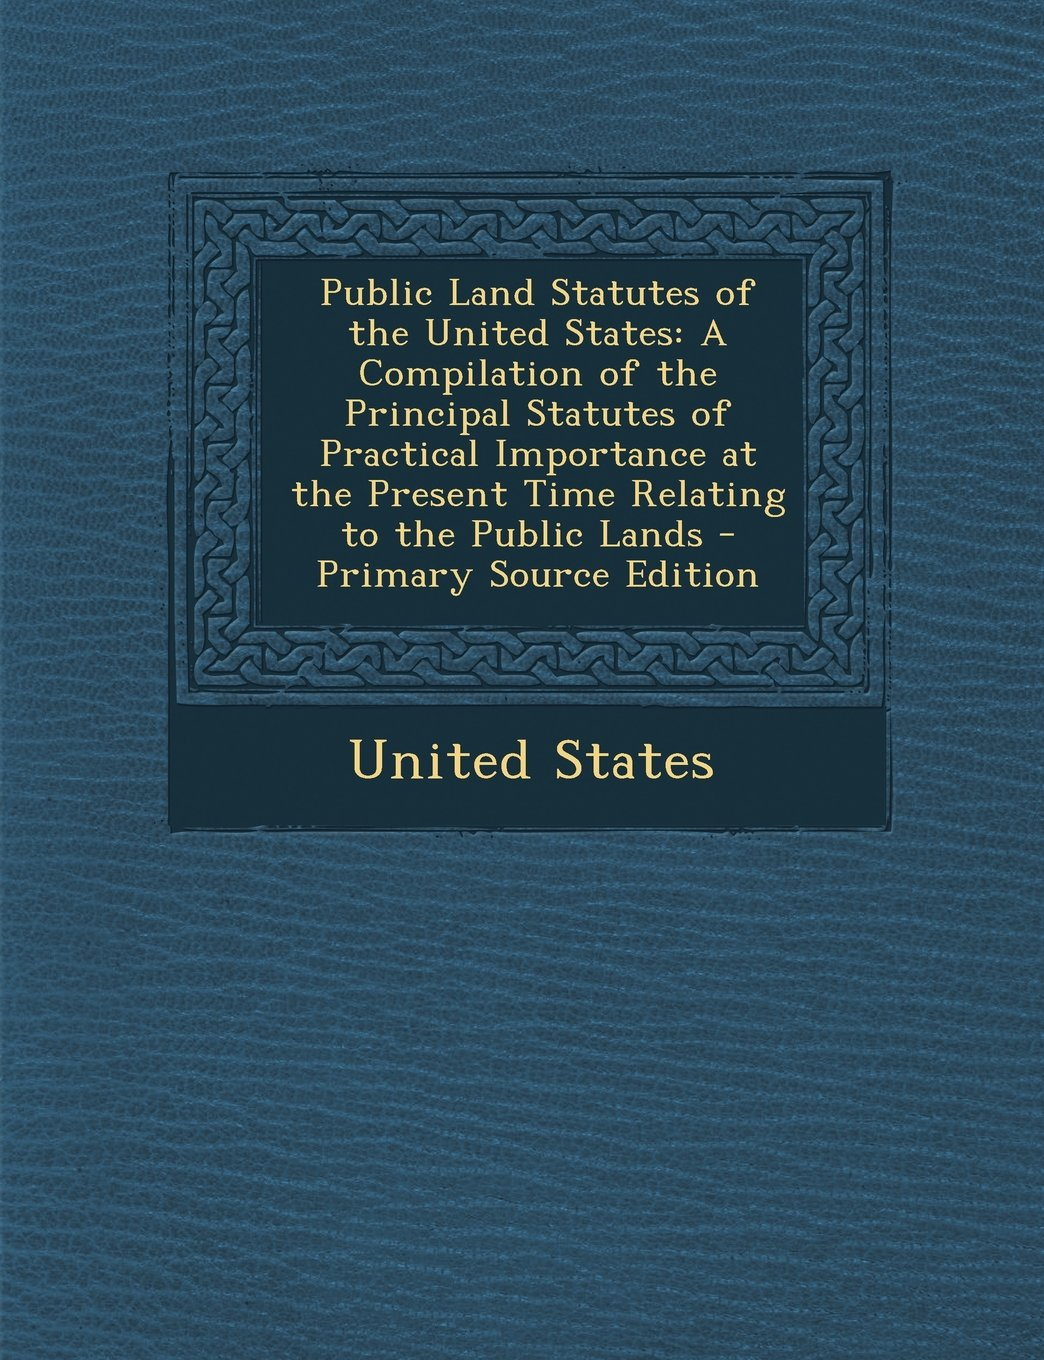 Download Public Land Statutes of the United States: A Compilation of the Principal Statutes of Practical Importance at the Present Time Relating to the Public pdf epub